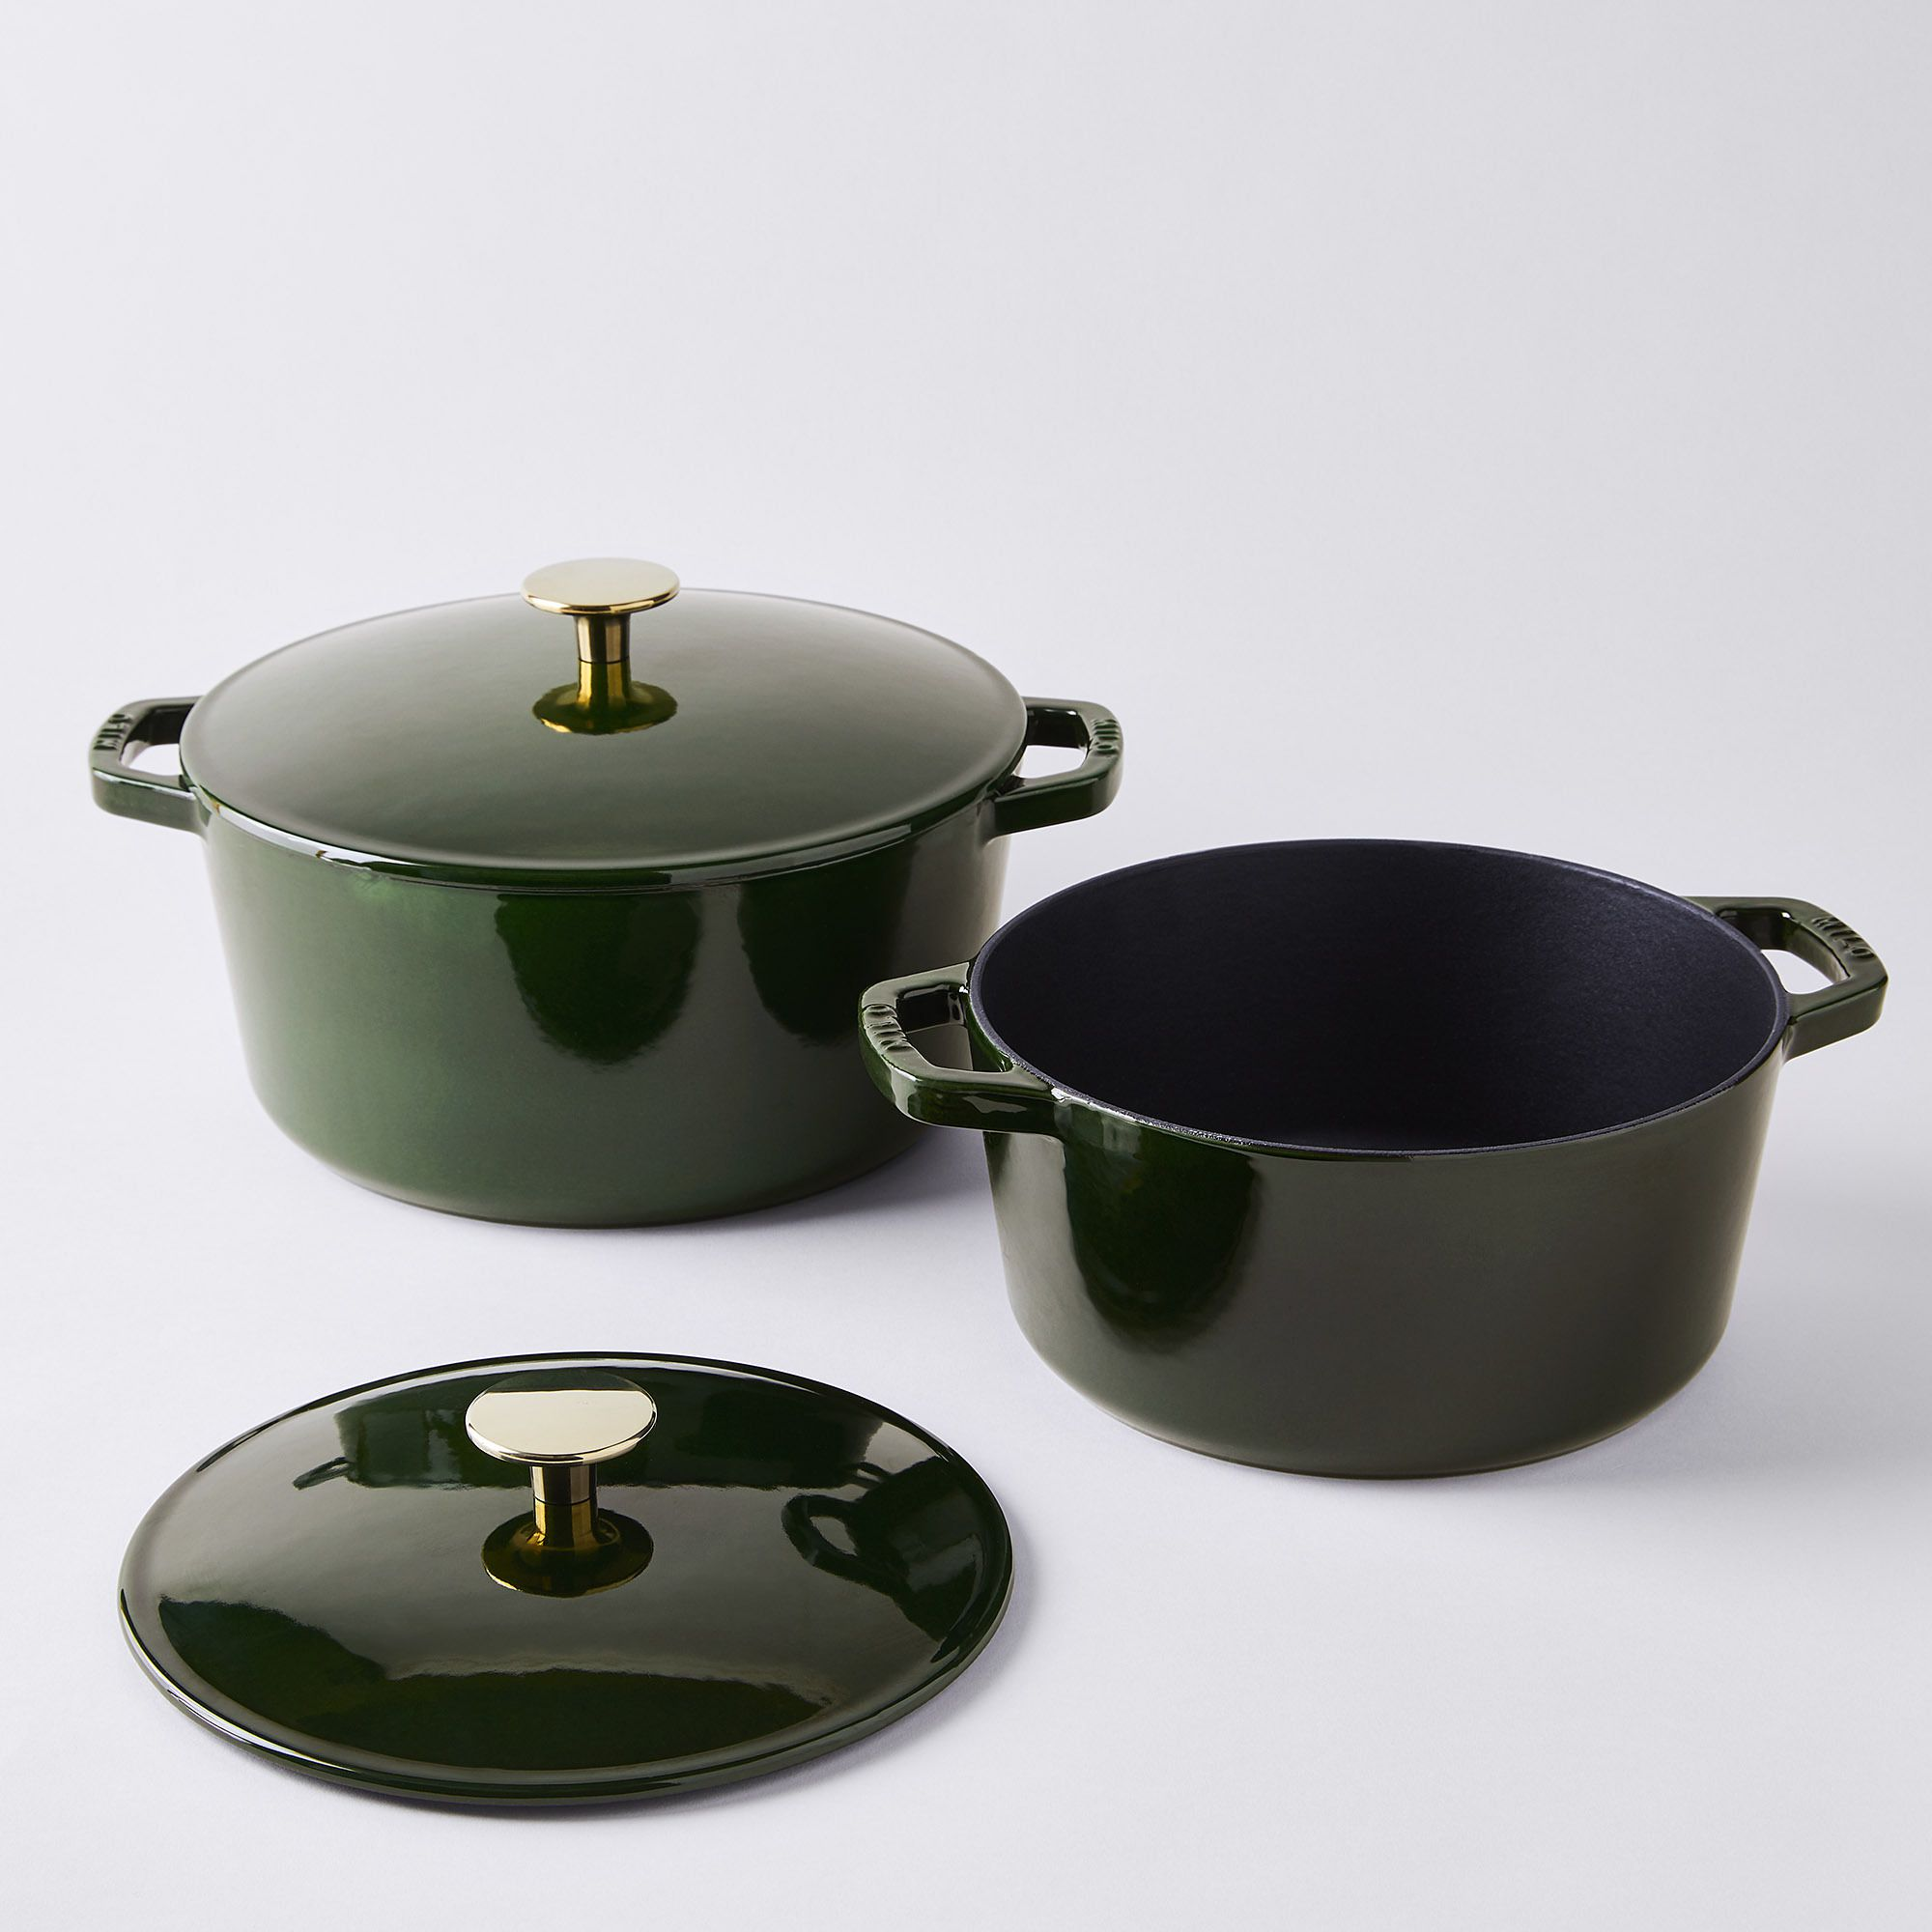 two green dutch ovens